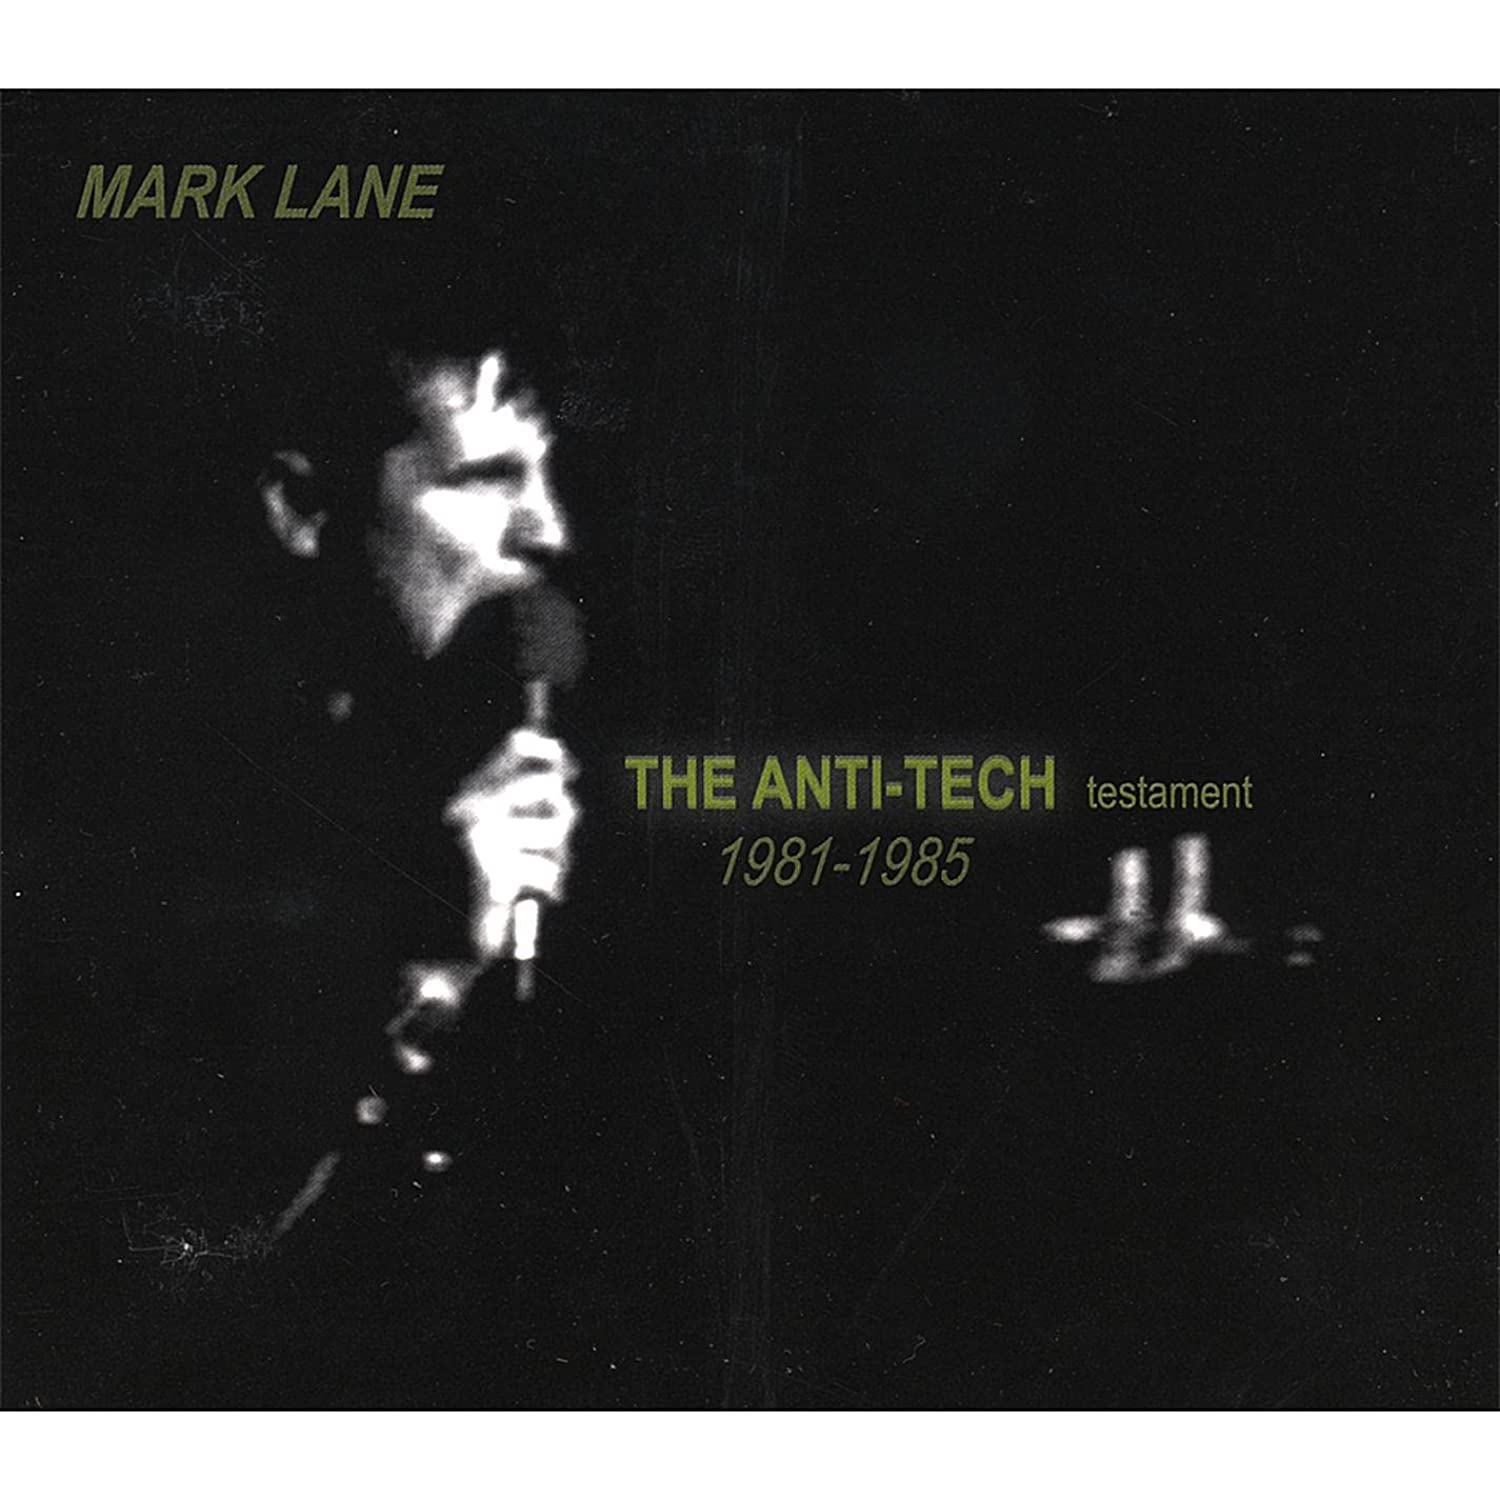 Mark Lane - The Anti-Tech Testament (1981-1985)